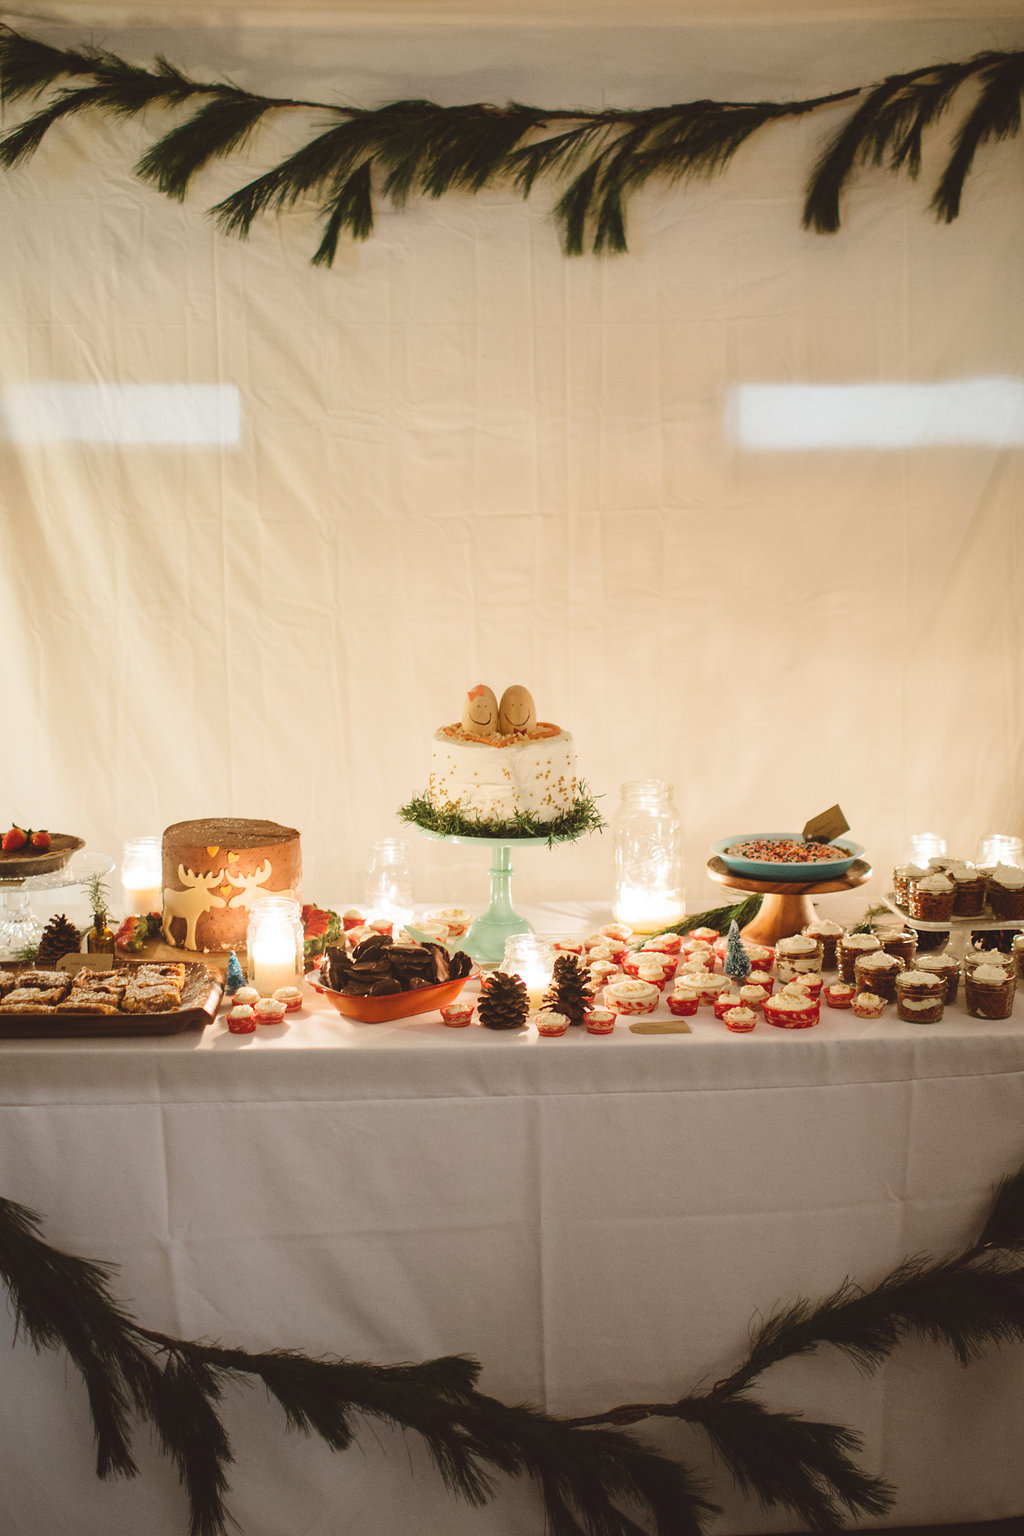 Our Wedding Desserts Tips For Making Your Own Wedding